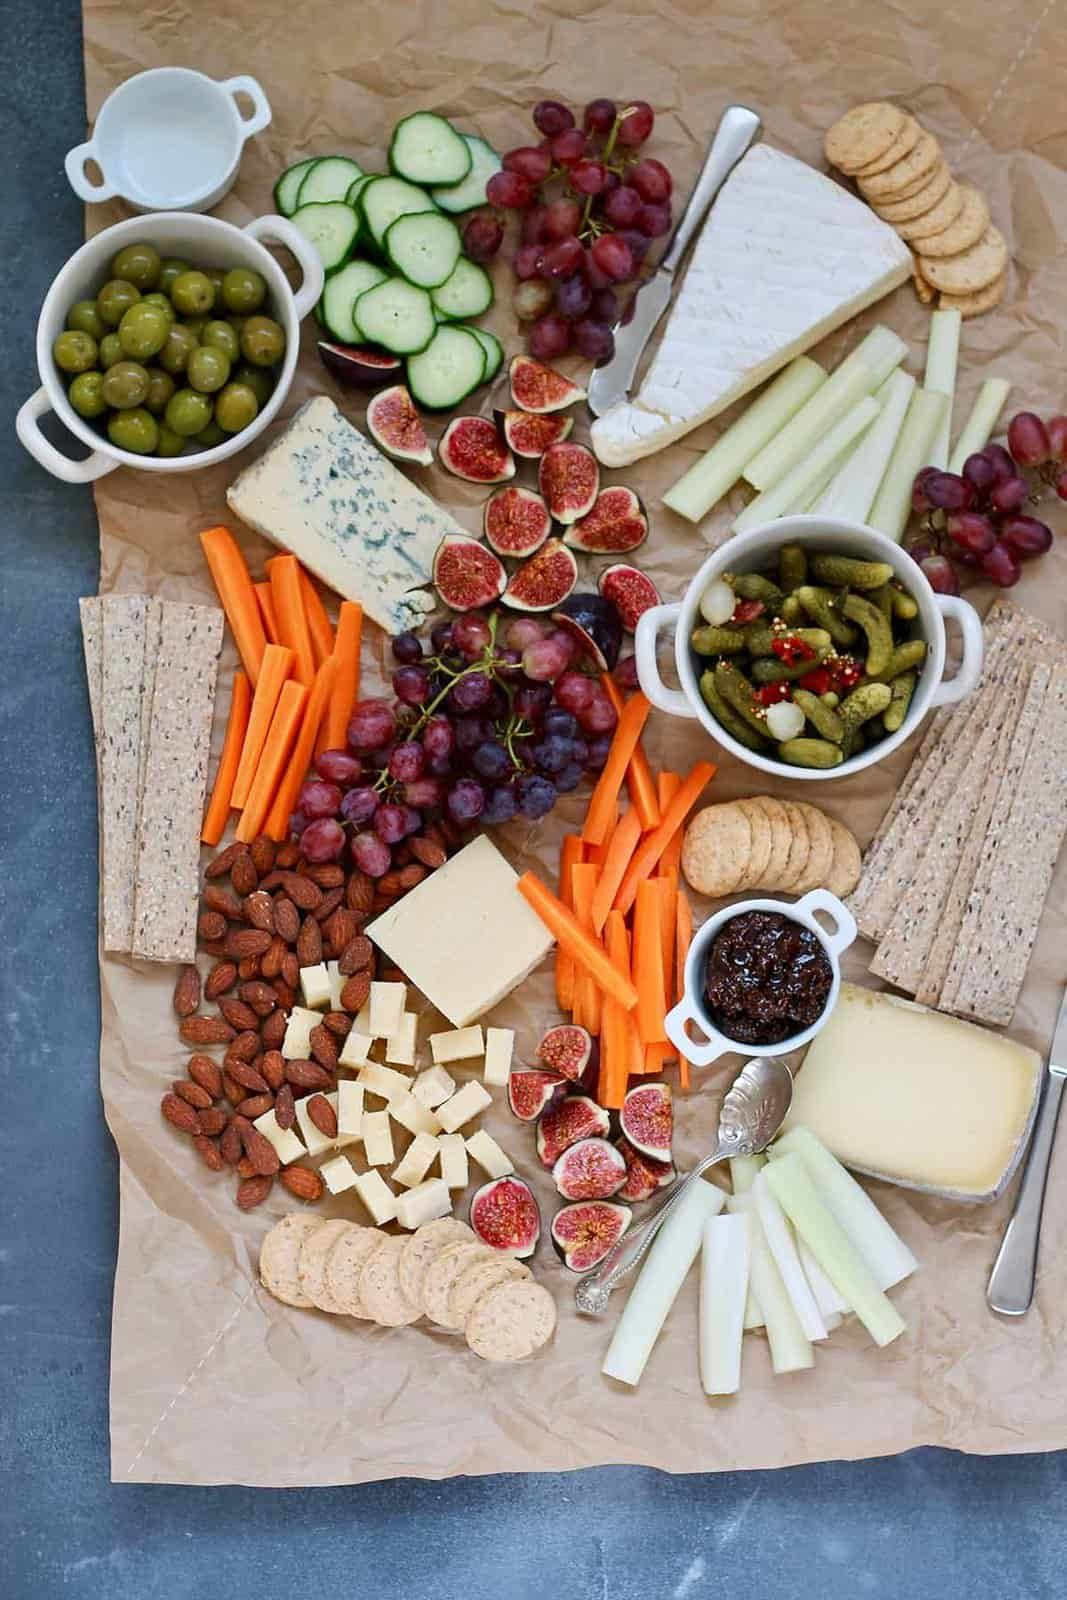 How To Make A Vegetarian Cheese Board In 2020 Vegetarian Cheese Boards Tasty Vegetarian Recipes Vegetarian Cheese